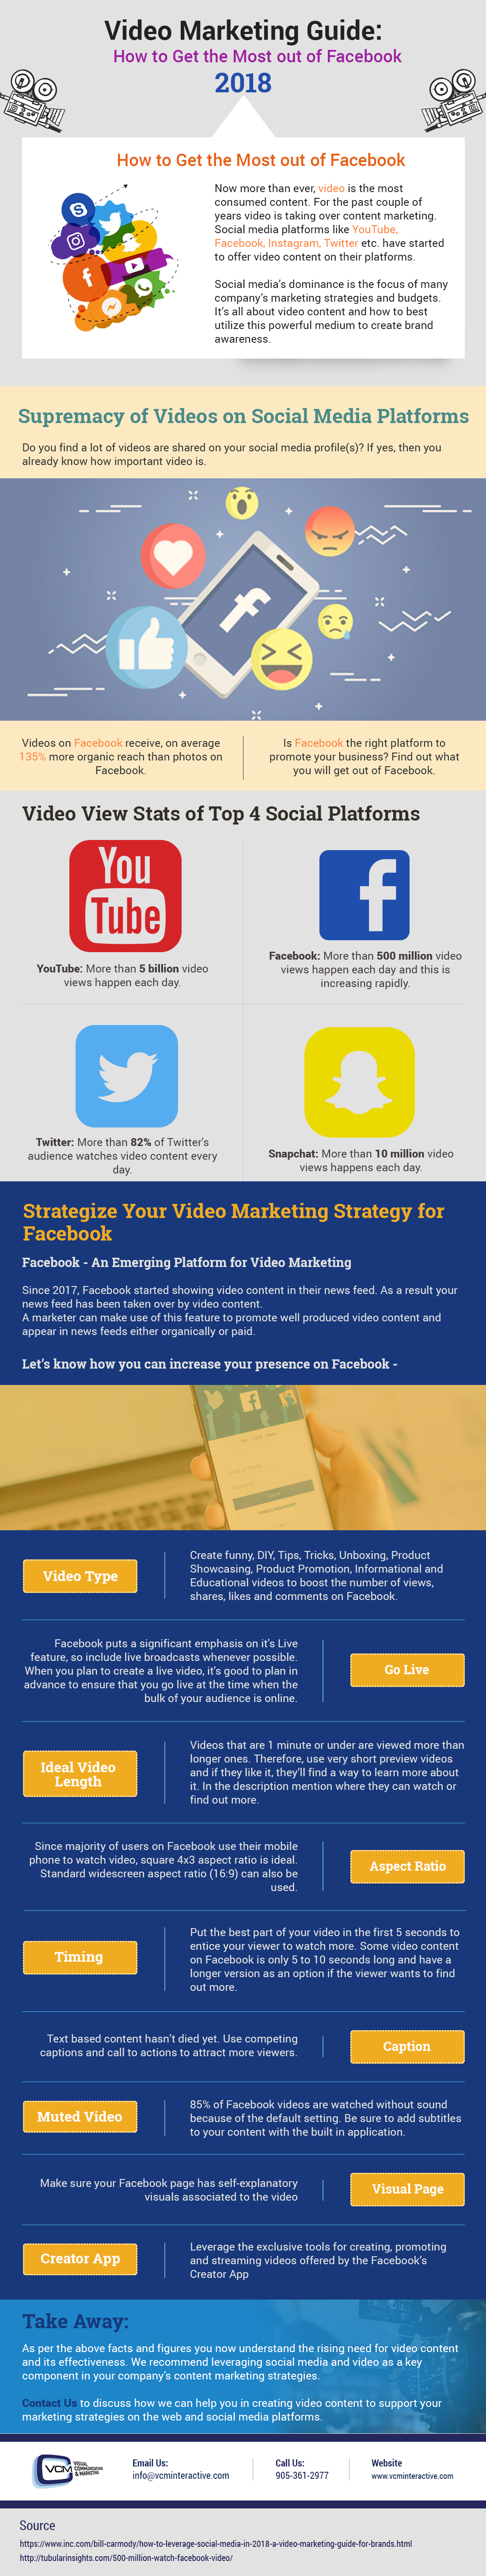 Video Marketing Toronto (Guide)